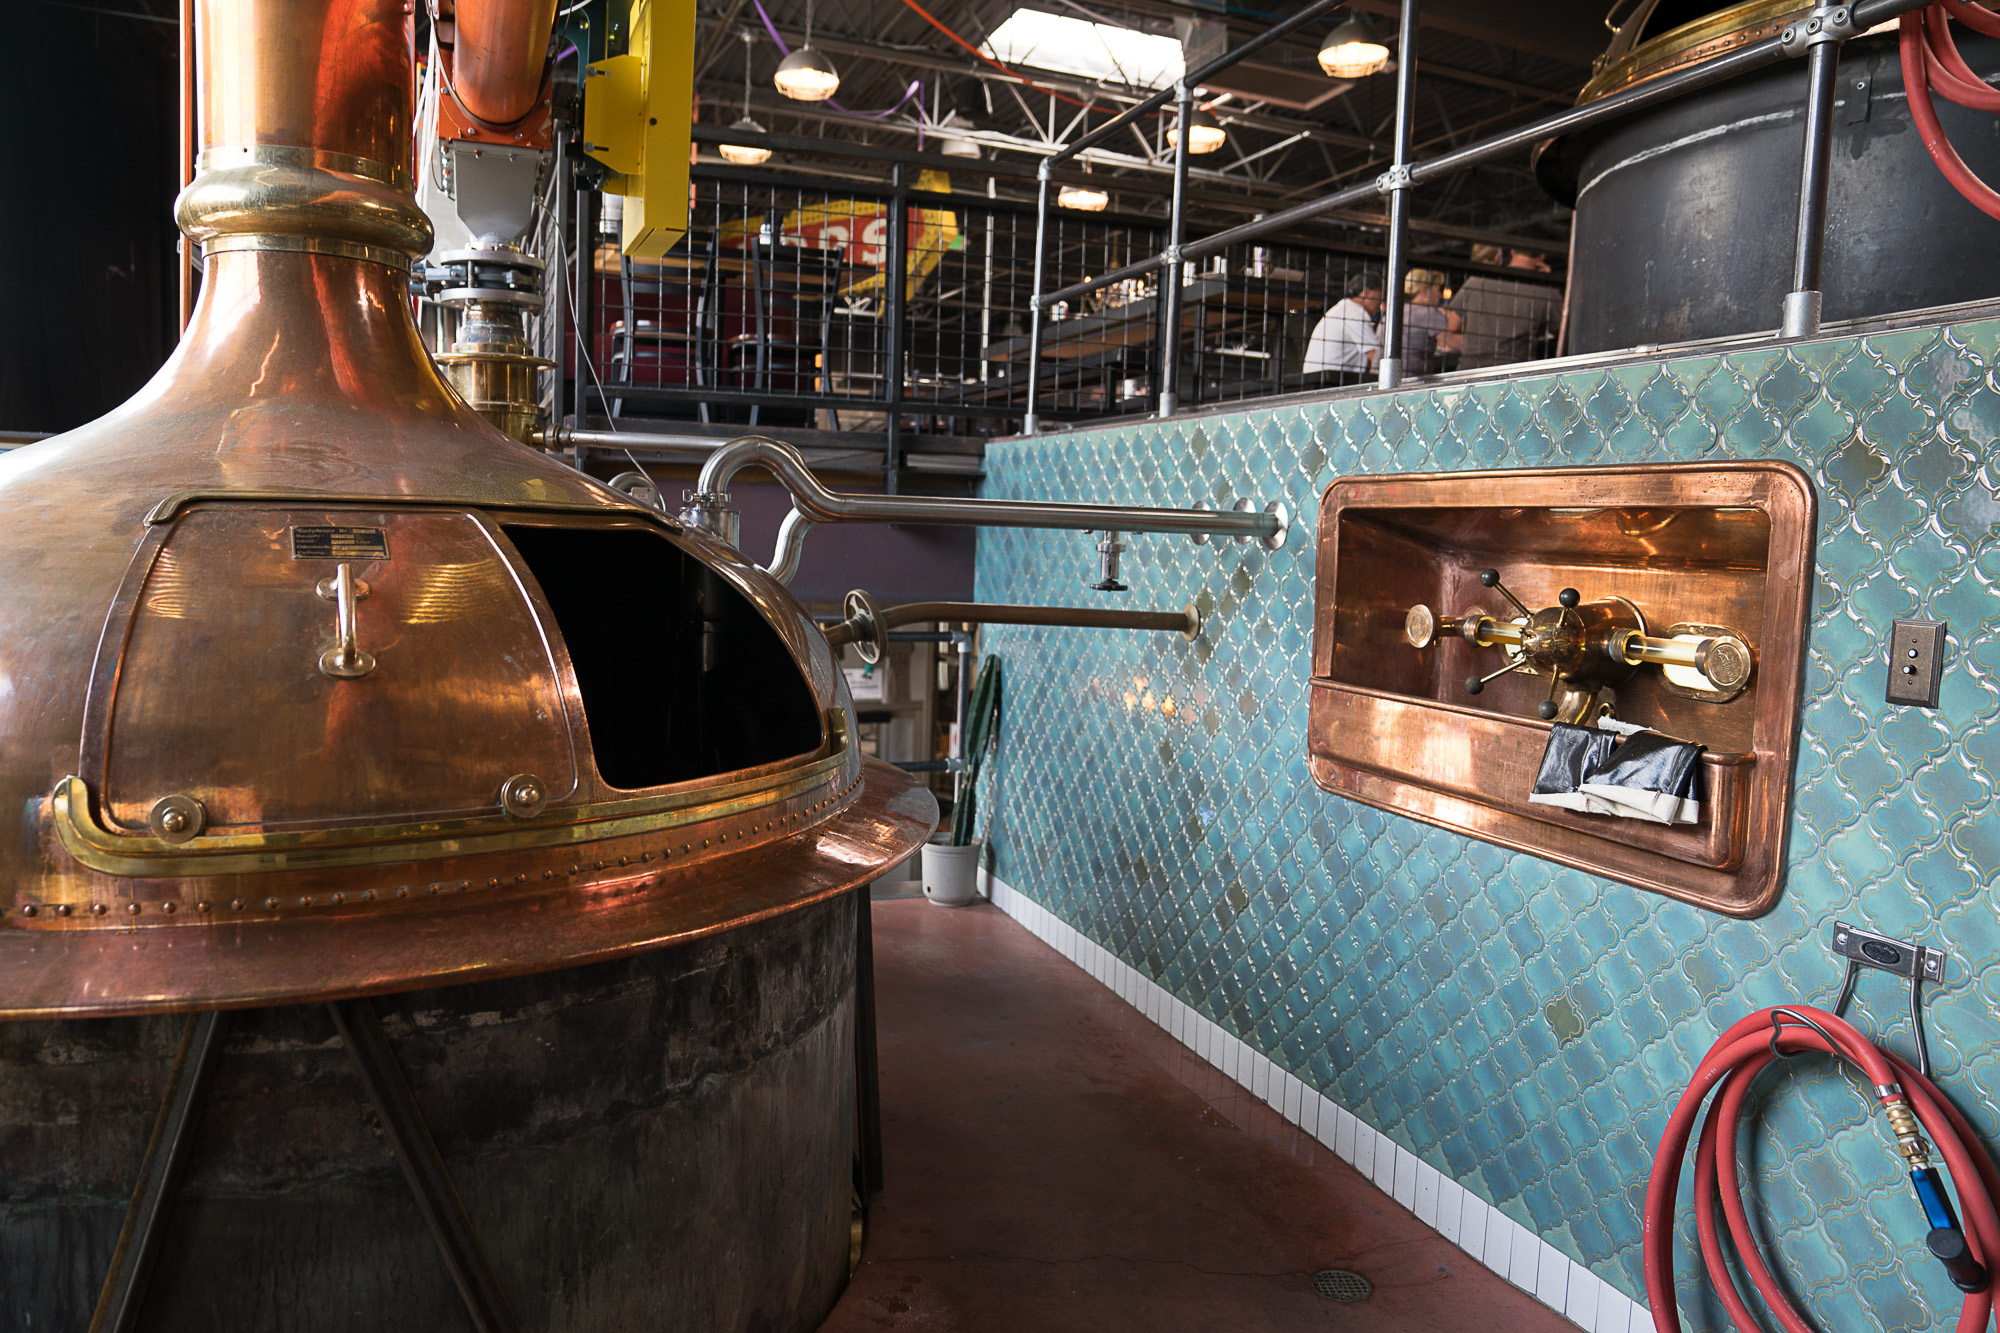 The blue tile and copper vat at Bierstadt Brewing in Denver, Colorado for Dirt Road Travels